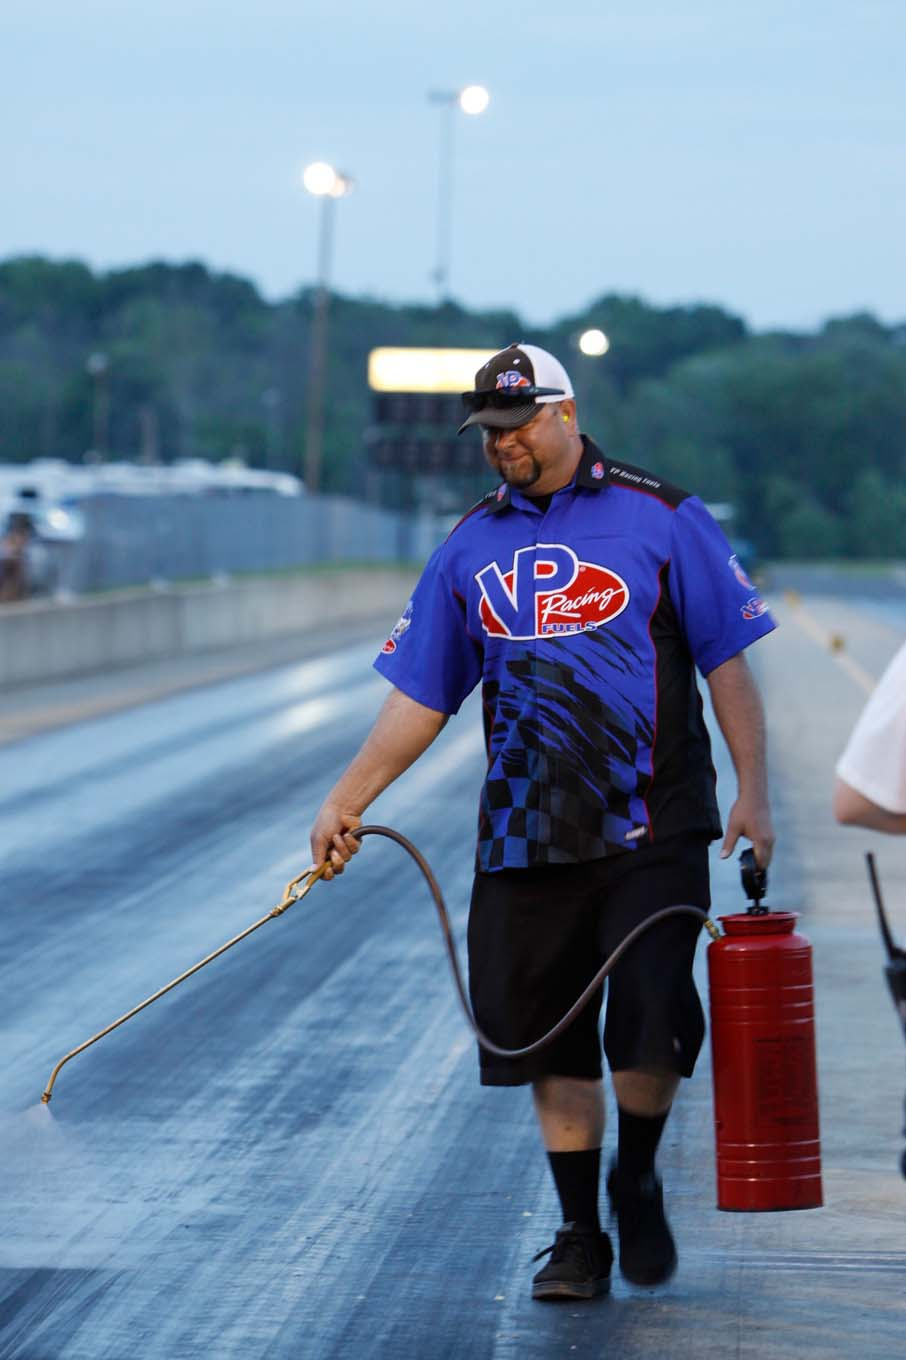 Traction guru Jason Rueckert hand-sprays the starting-line area during Prize Fight 2 at Ohio Valley Raceway in June 2015.